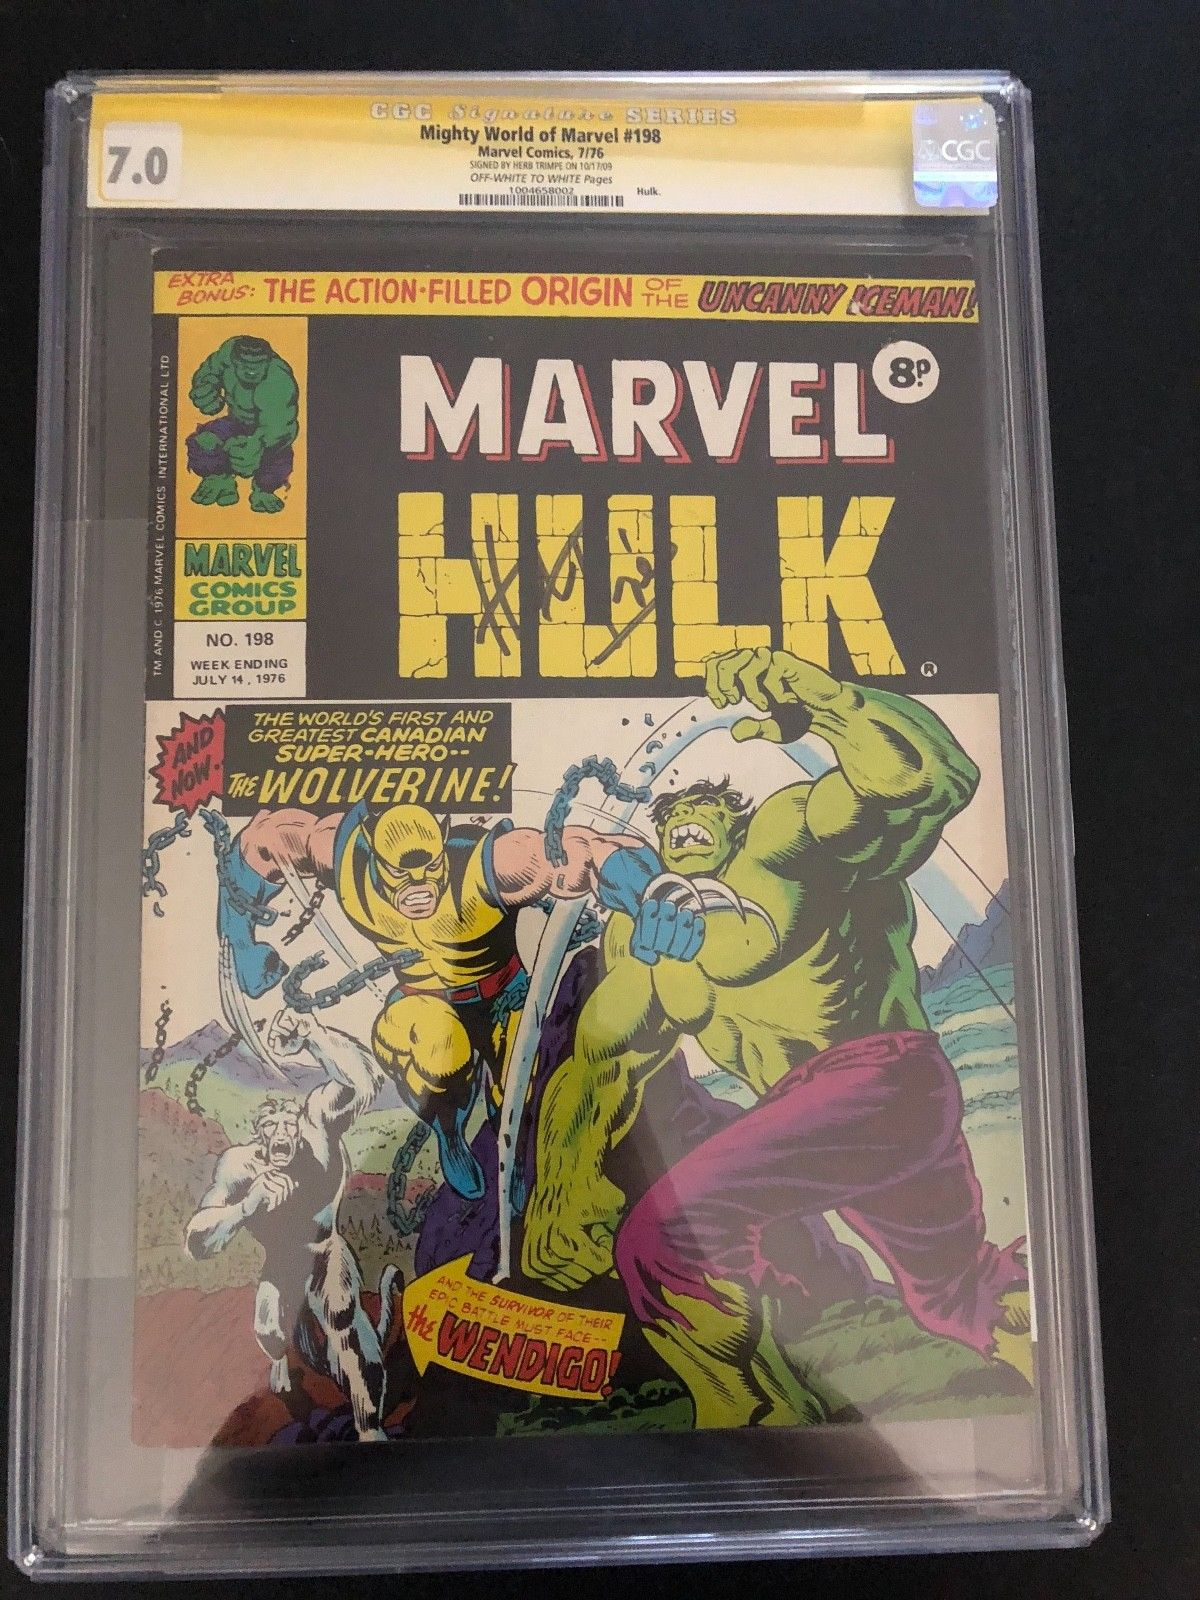 Hulk 181 Mighty World of Marvel 198 CGC 7.0 1st app wolverine trimpe signed KEY